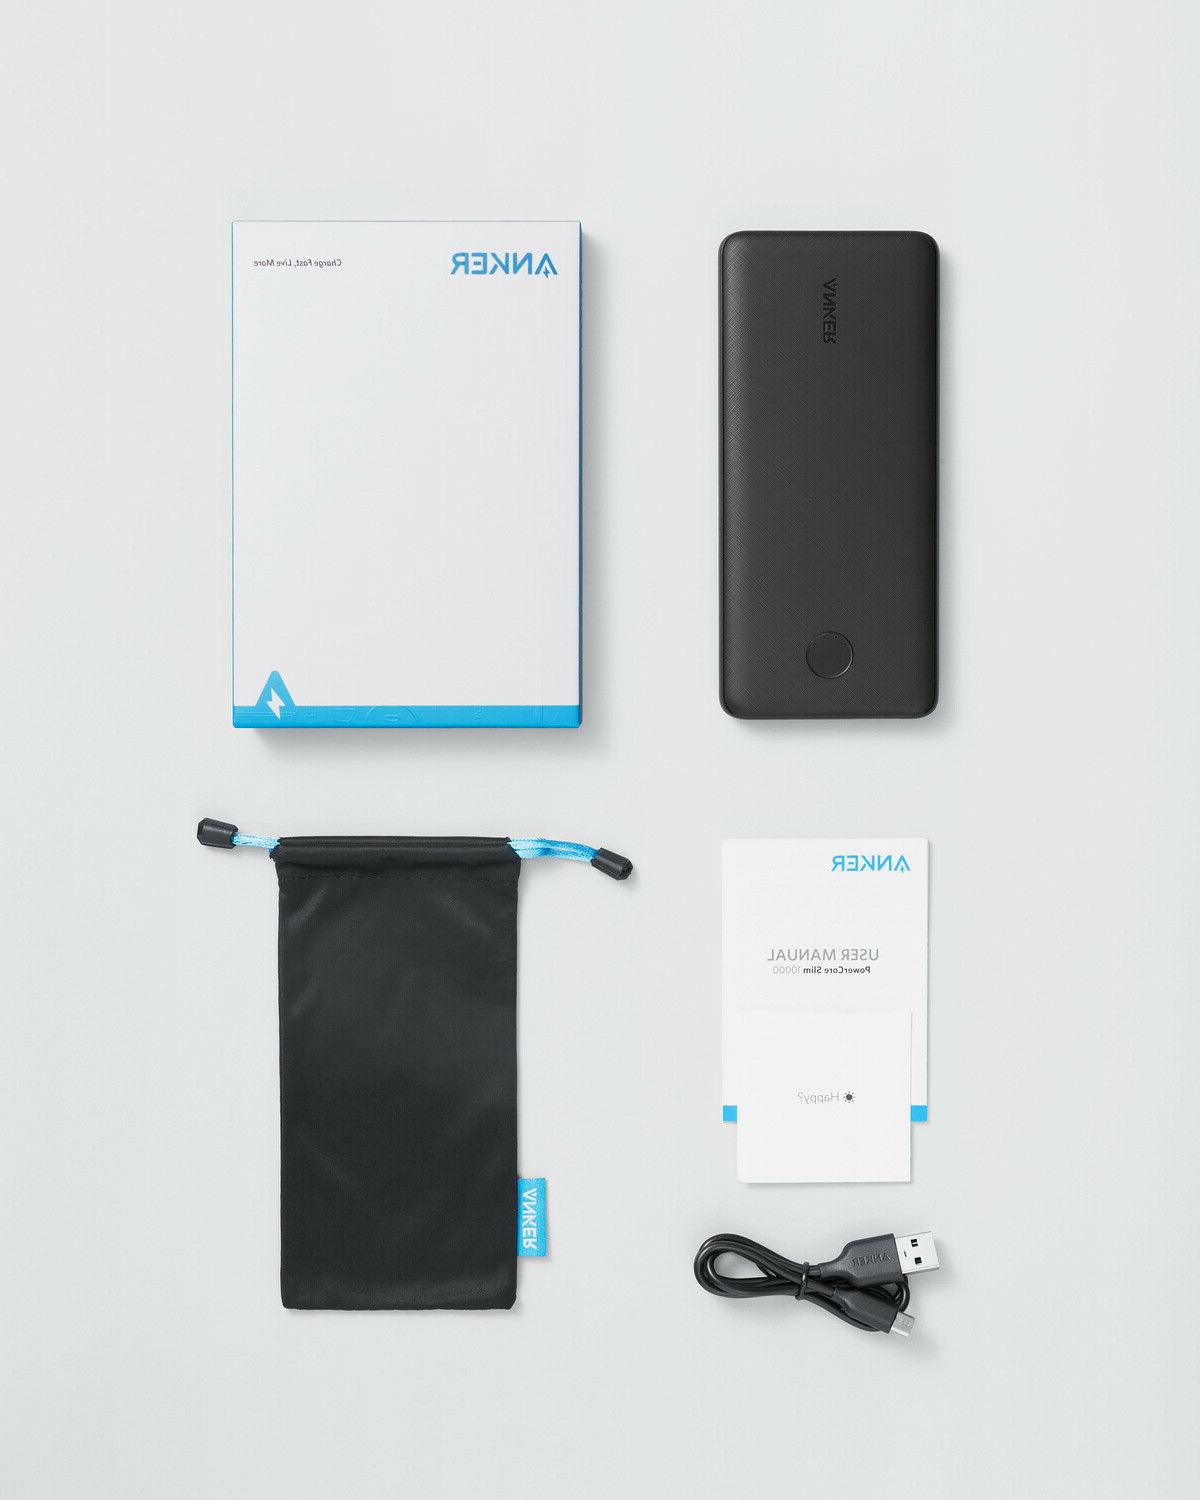 Anker 10000mAh External Battery VoltageBoost Power